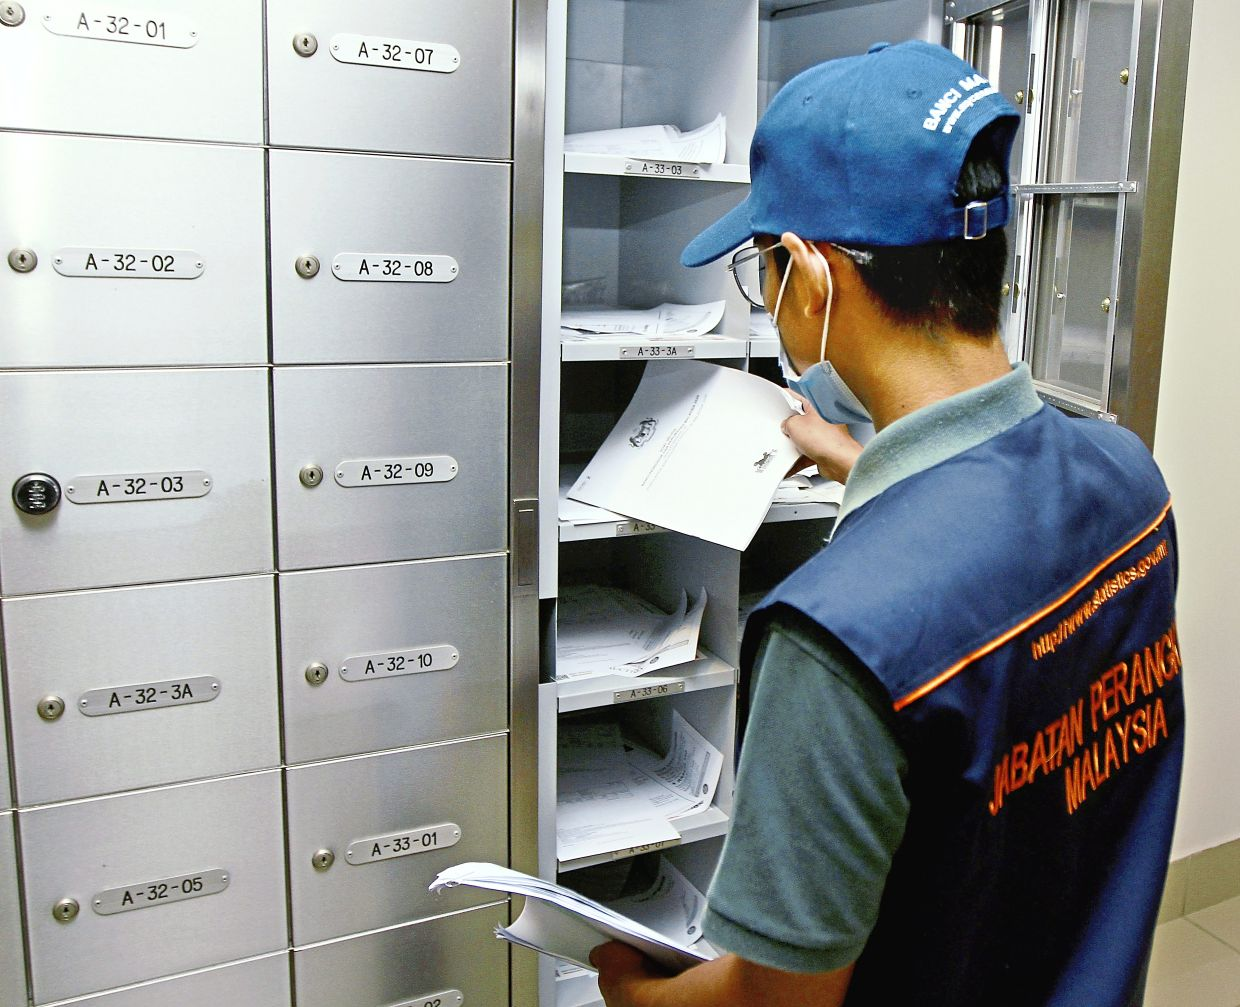 An emunerator placing census survey forms in the post boxes of a condominium.